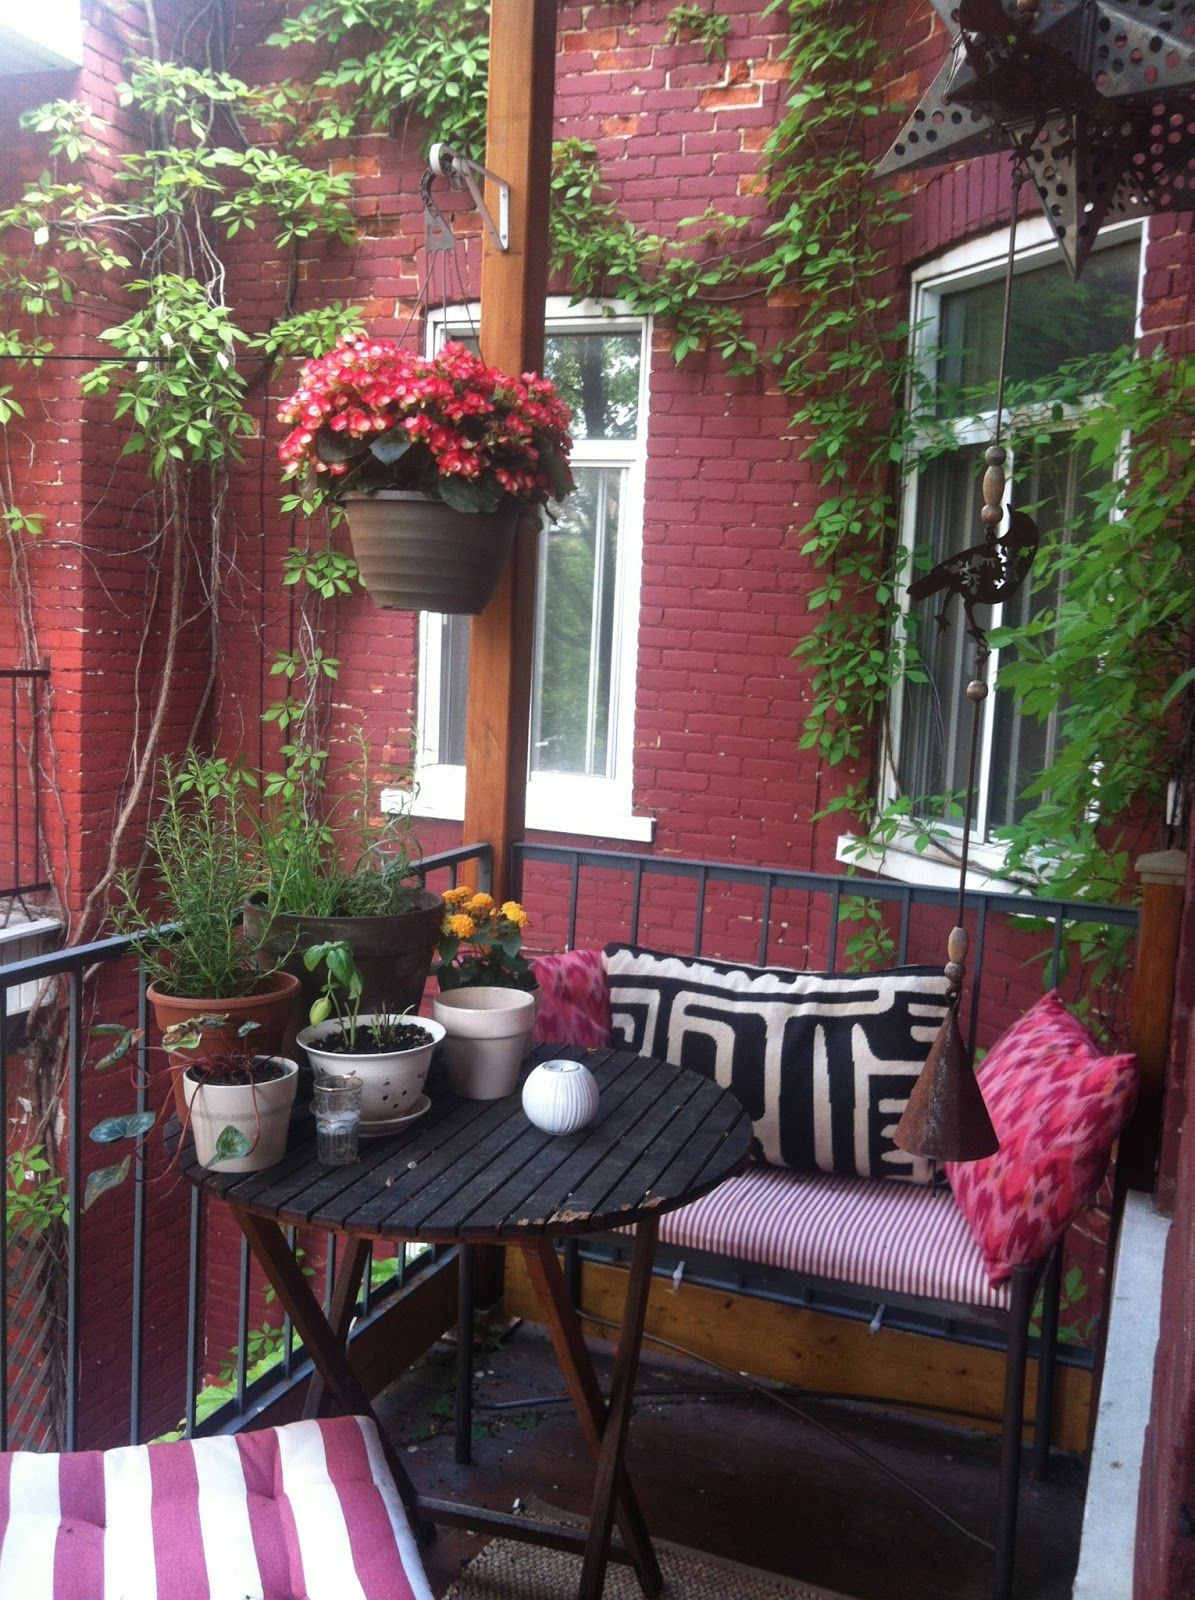 Apartment balcony ideas pictures to pin on pinterest - Bright And Inviting Small Balcony With Hanging Plants For Added Colour For Similar Pins Please